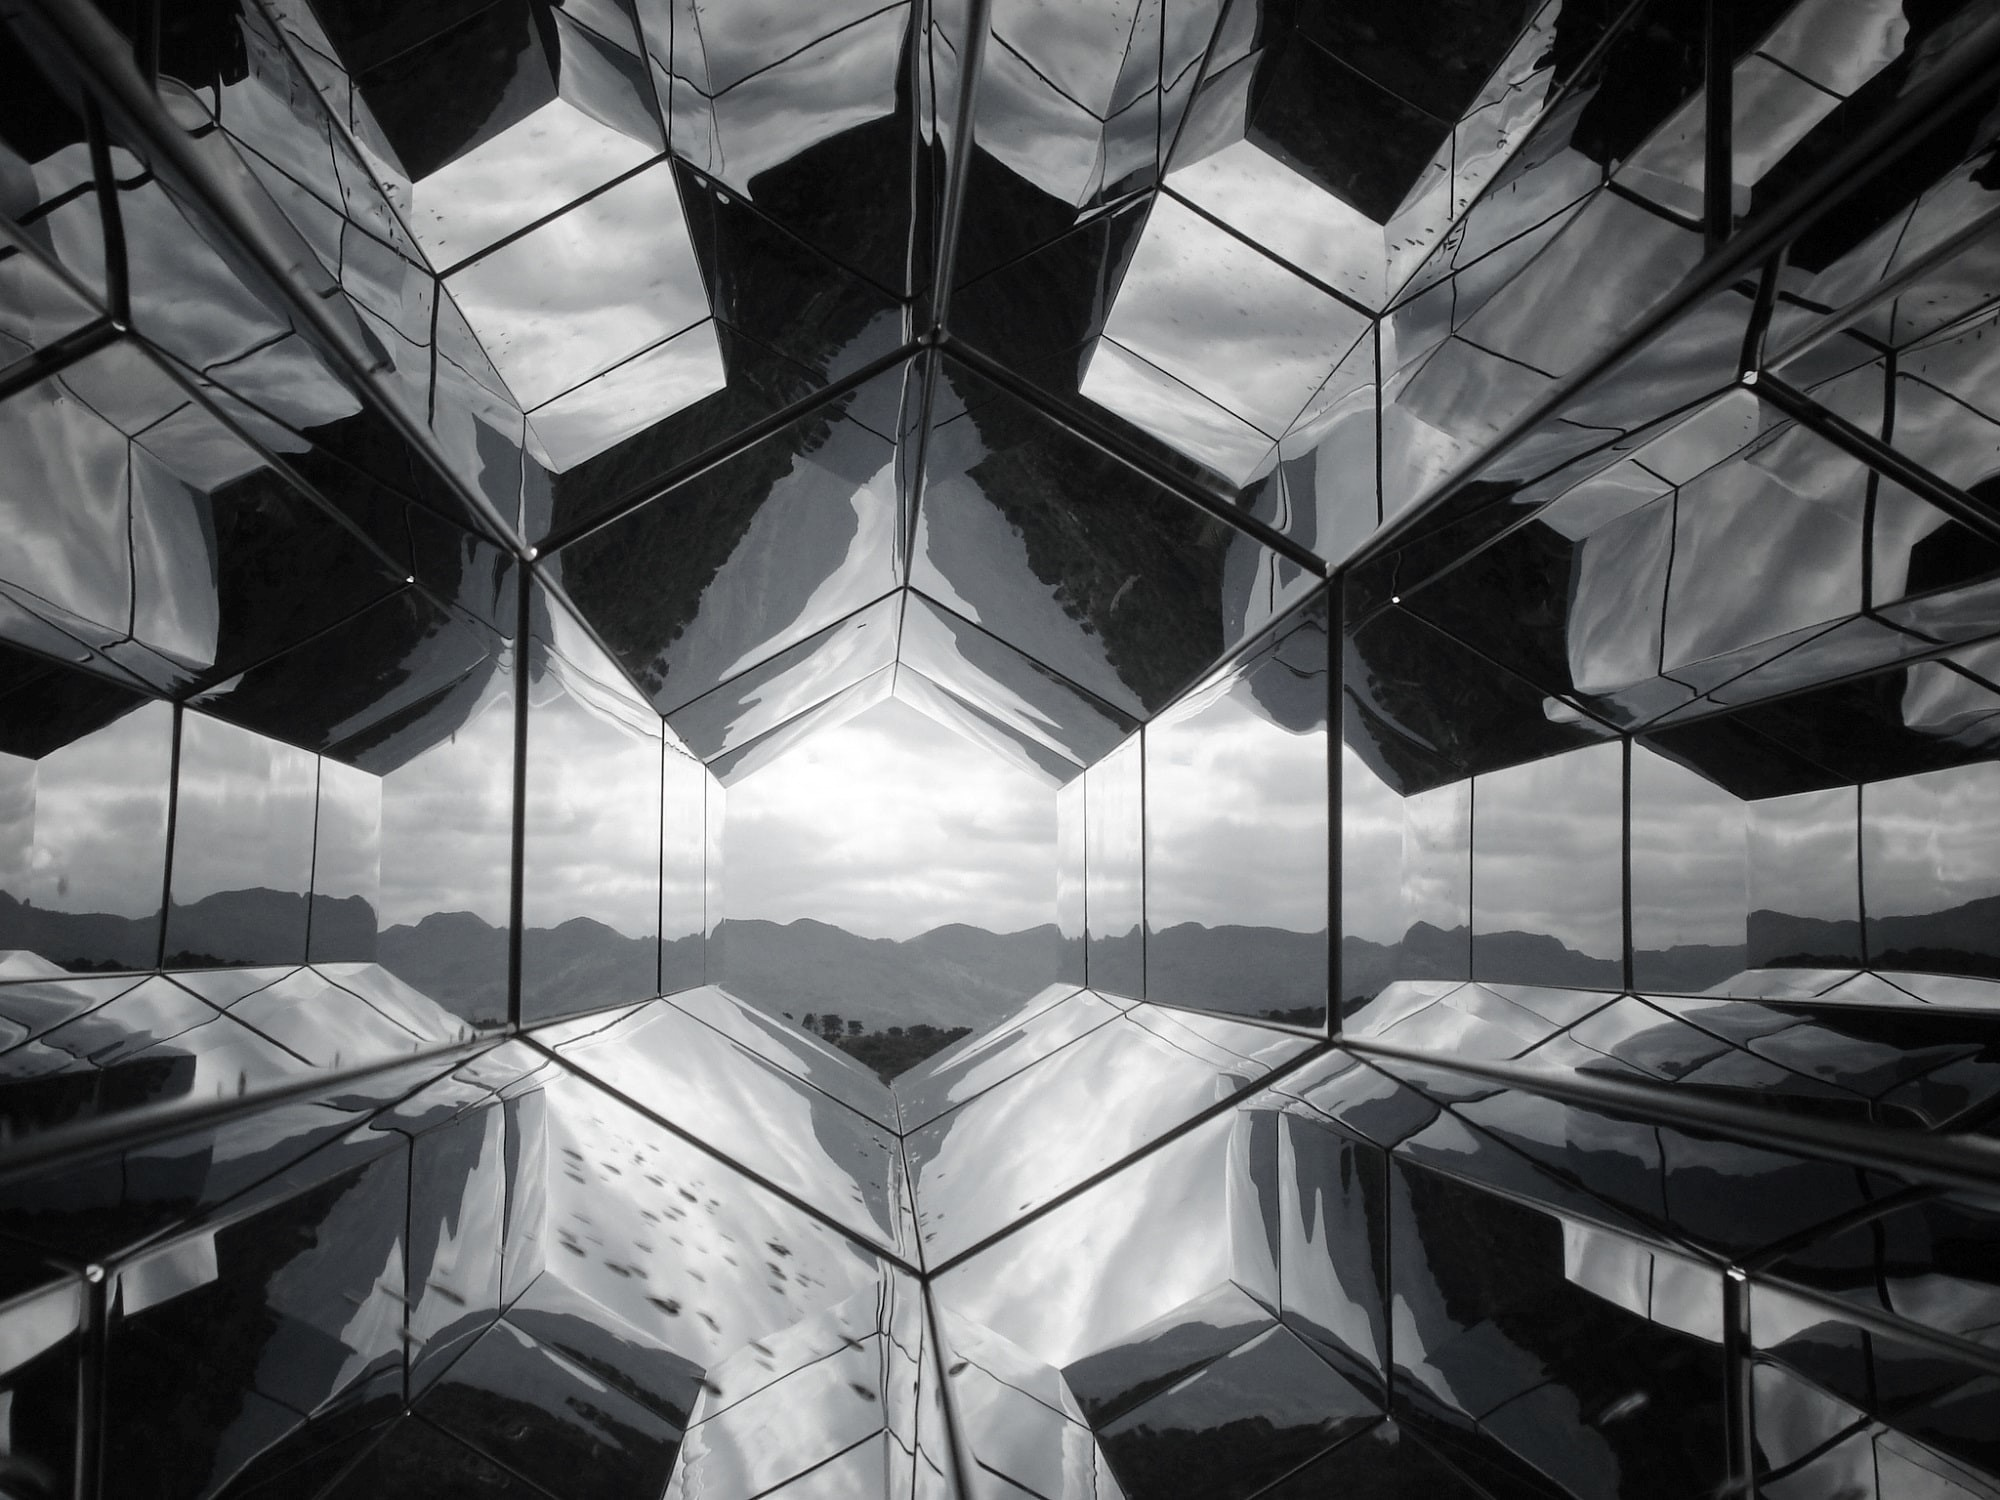 Mirrored surfaces reflect on each other to show mountain view